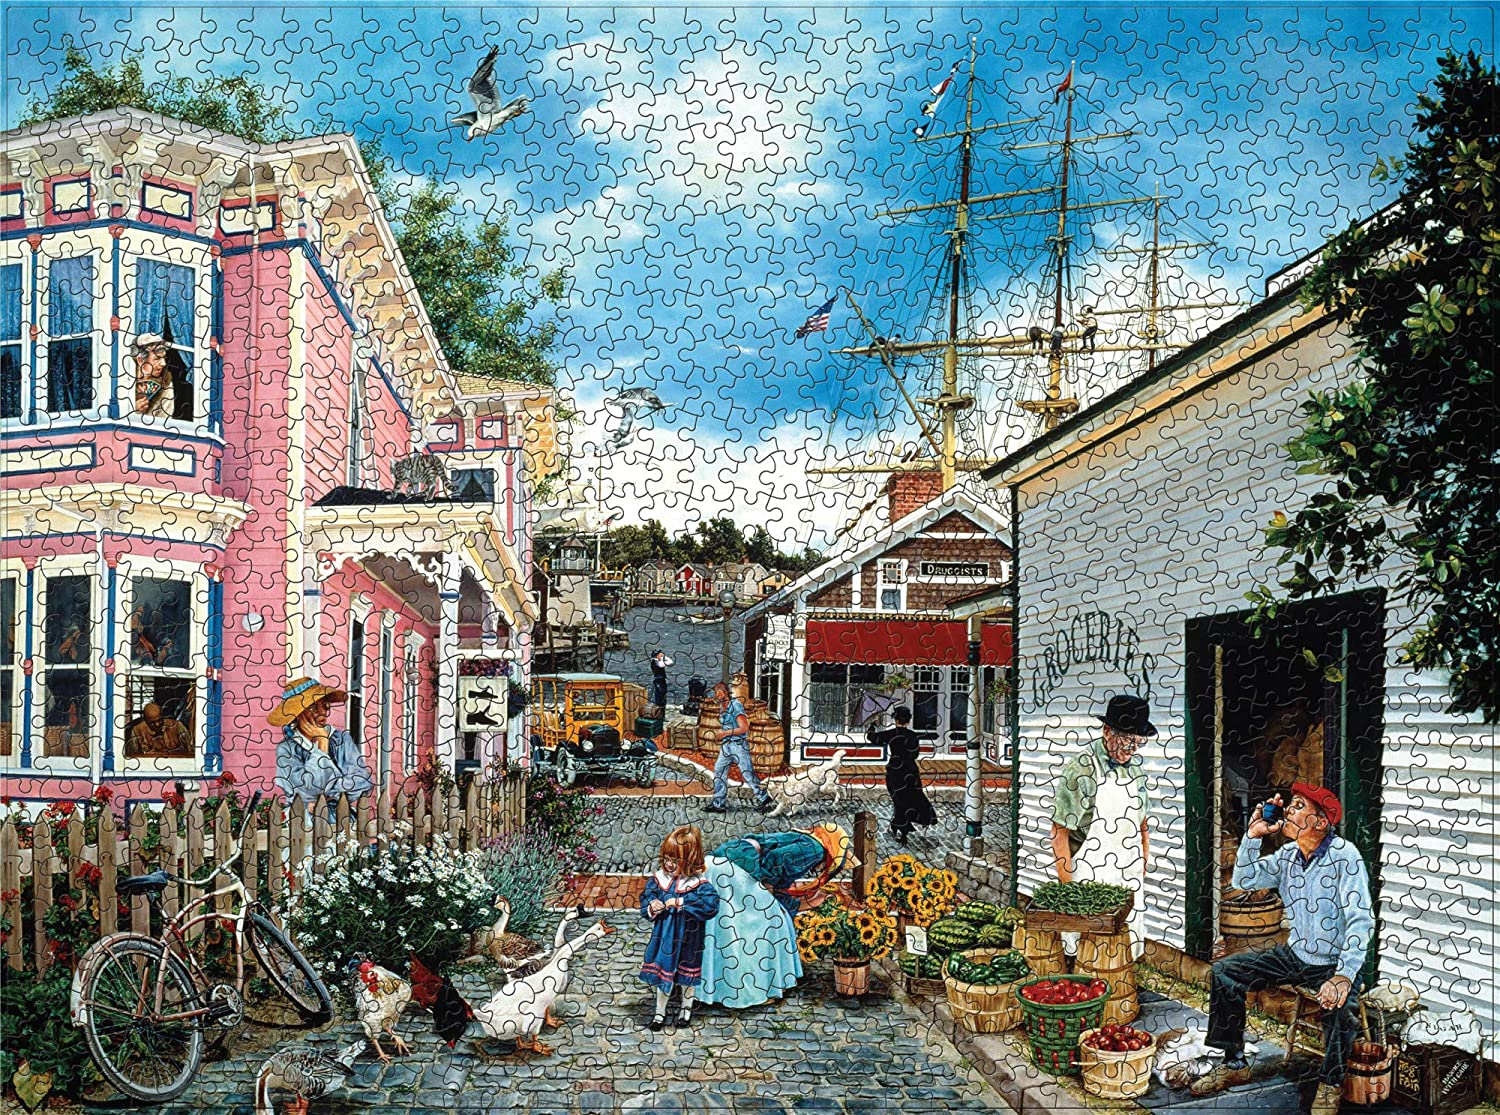 1000 Piece Puzzles - Jigsaw Puzzles 1000 Pieces for Adults - 27.16 x 20.08 inches - The Best Way to Preserve Your Finished Puzzle!(Wharf Town)